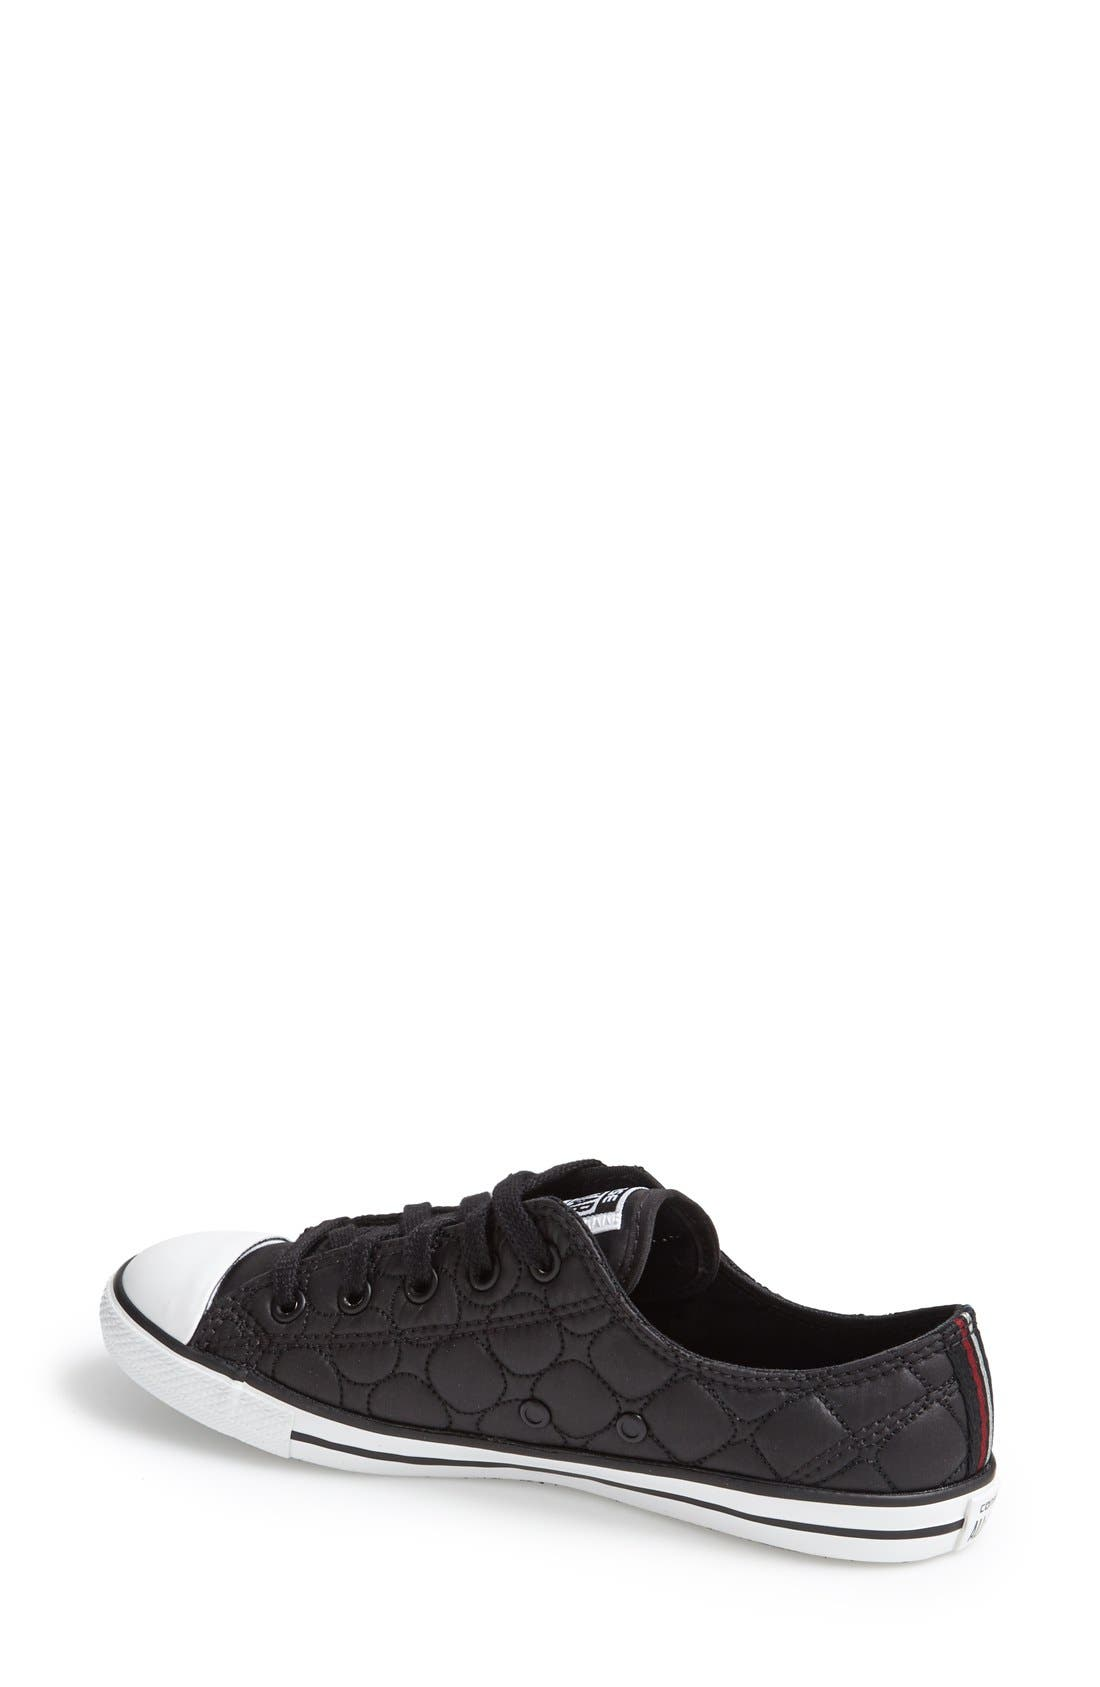 Alternate Image 2  - Converse Chuck Taylor® All Star® 'Dainty' Quilted Sneaker (Women)